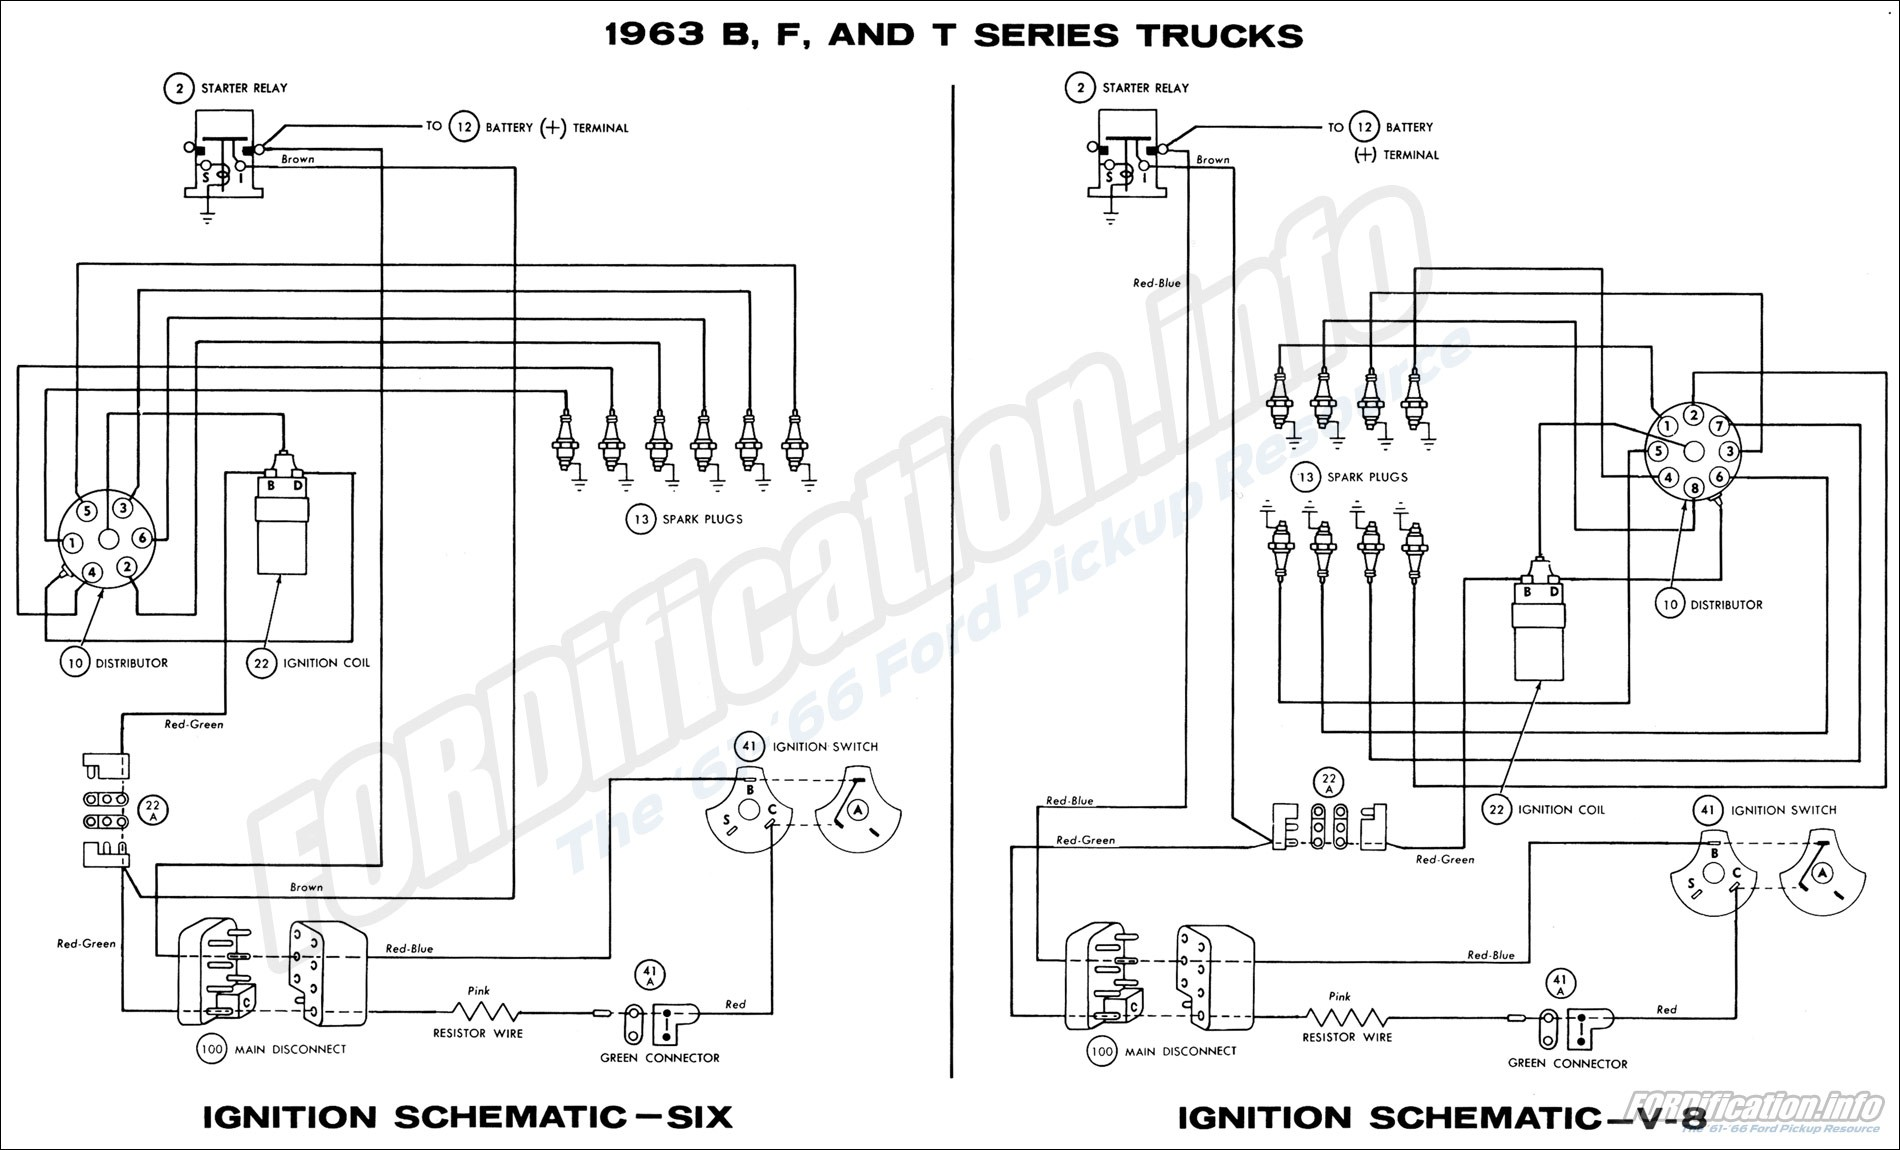 Ignition Schematics Six and V8